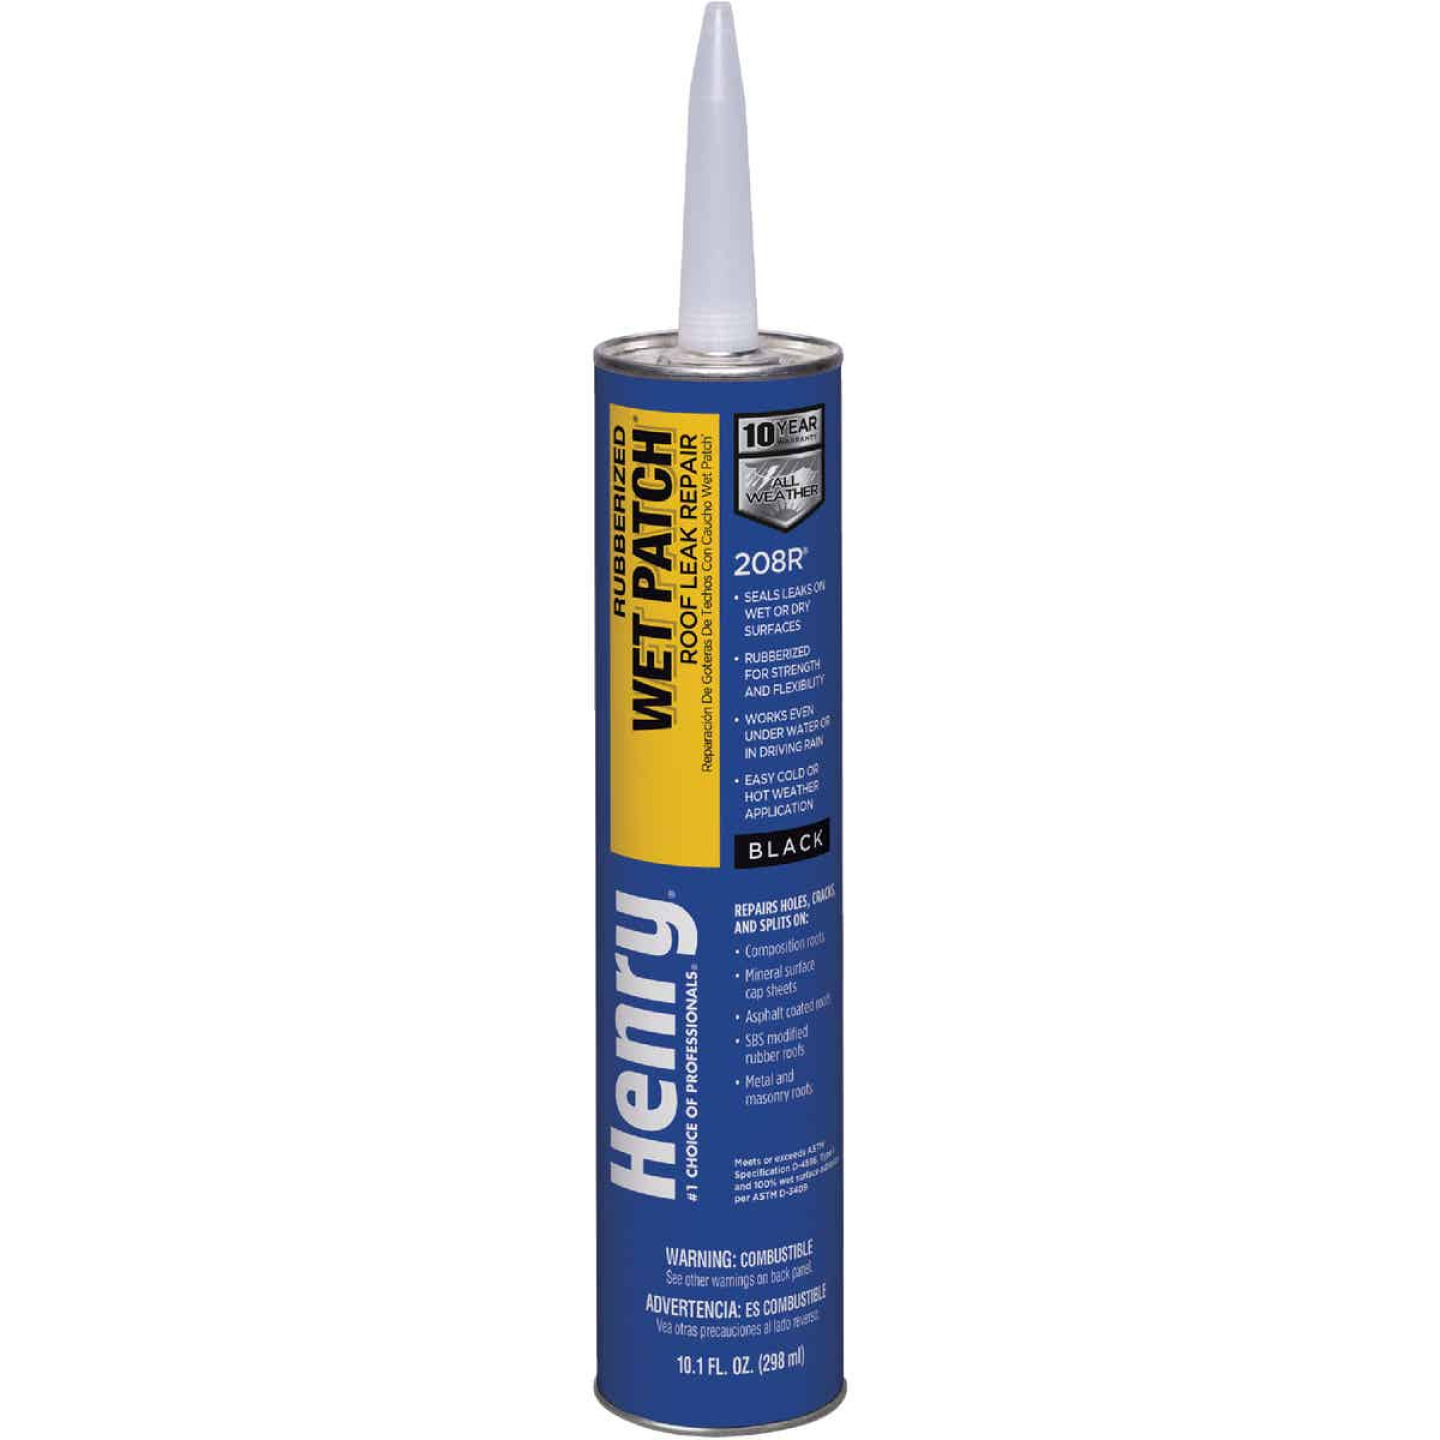 Henry Wet Patch 10.1 Oz. Rubberized Roof Cement and Patching Sealant Image 1